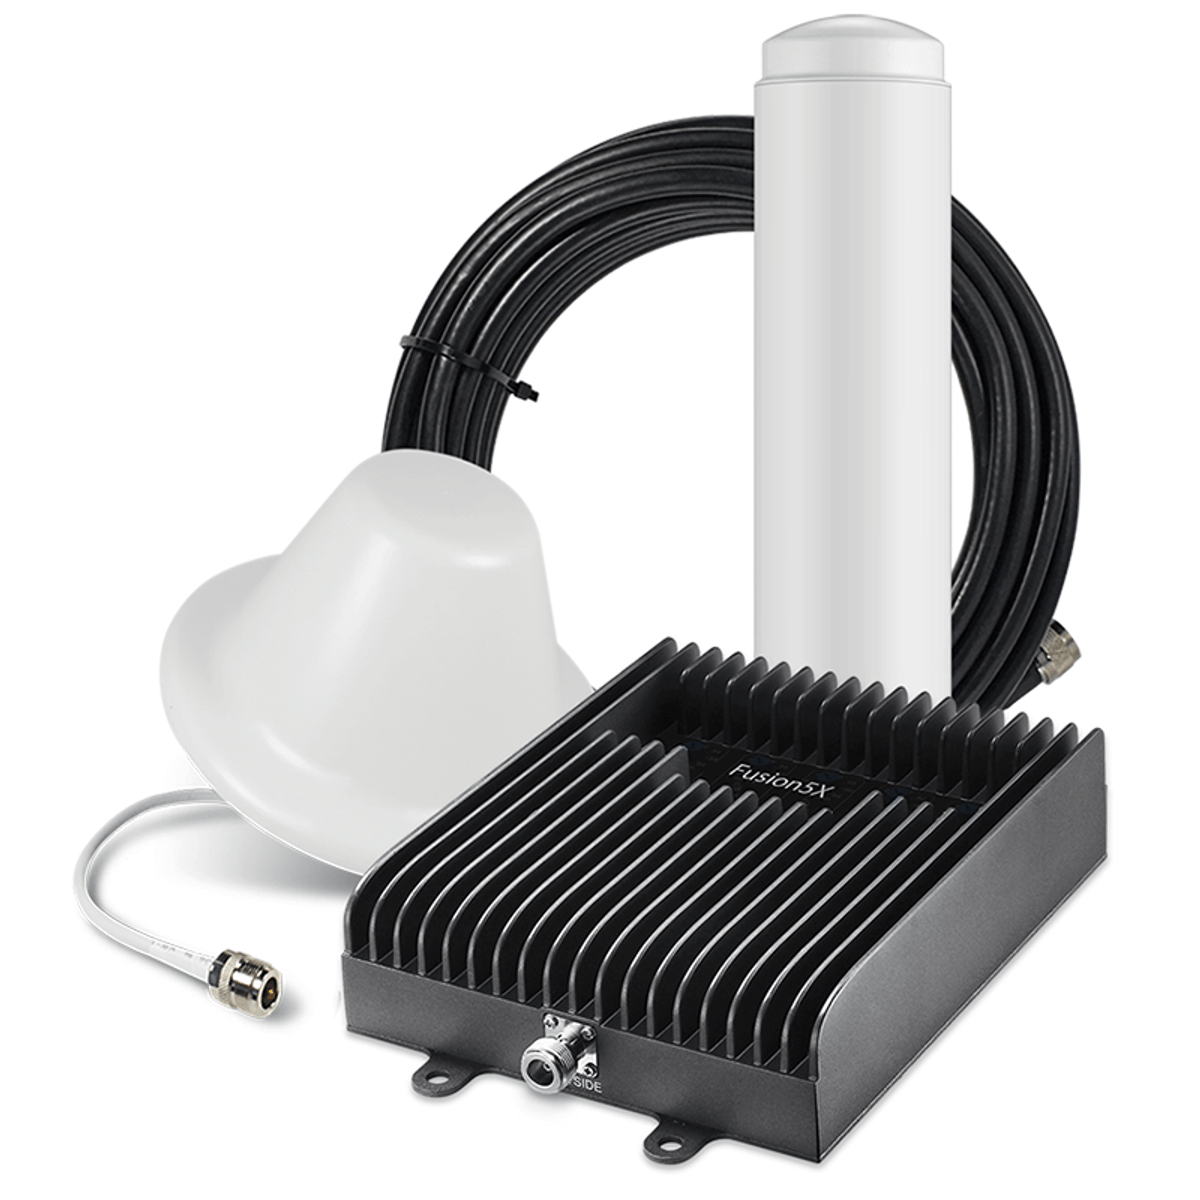 SureCall Fusion5X 2.0 Signal Booster Kit with 1 Inside / 1 Outside Antennas